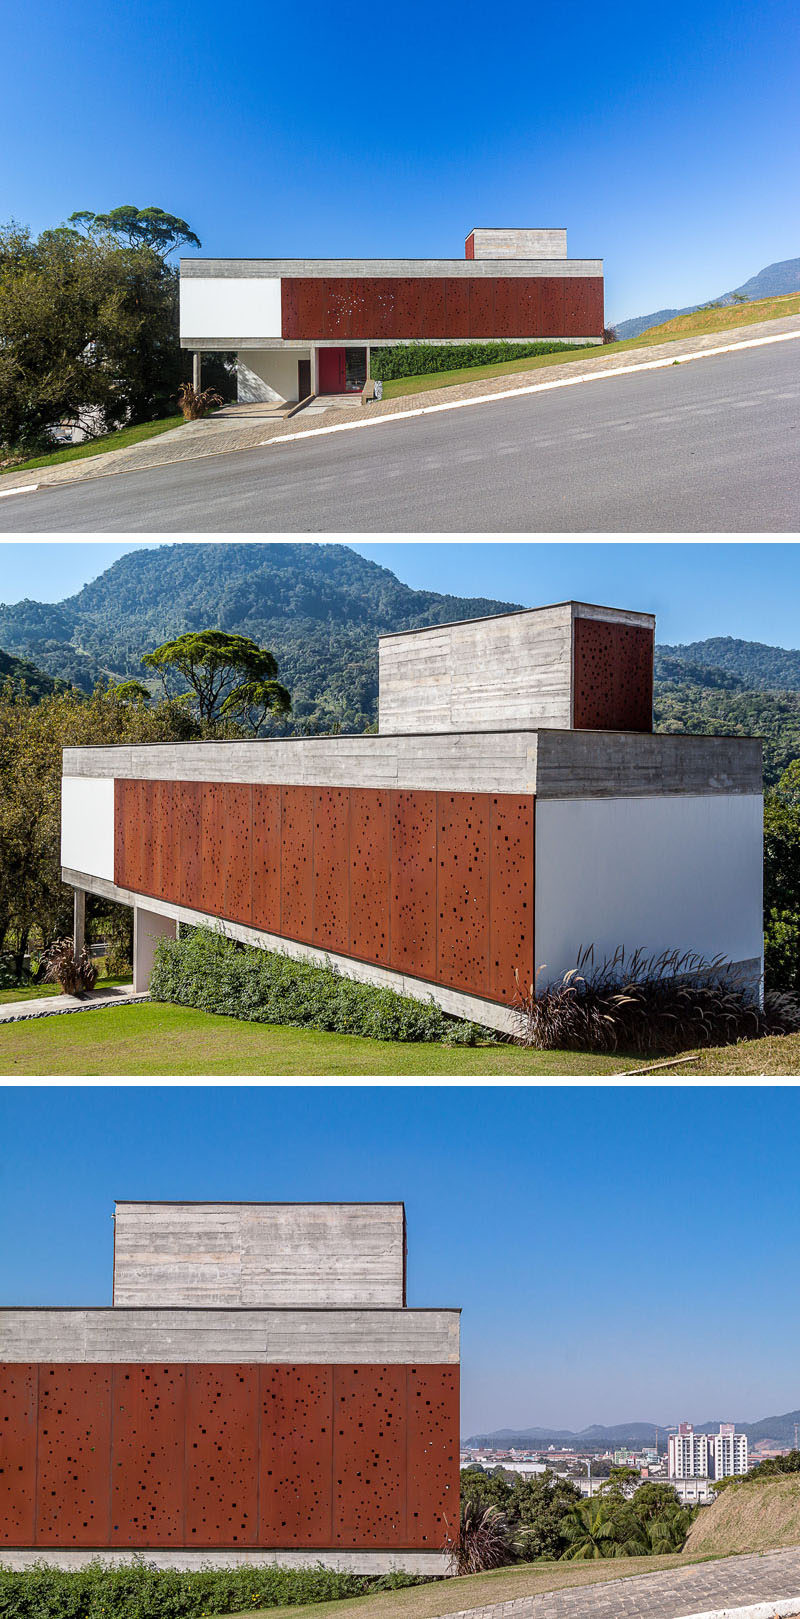 PJV Arquitetura have designed a modern concrete house that has an artistic perforated weathering steel screen to provide privacy and shade. #Architecture #WeatheringSteel #SteelScreen